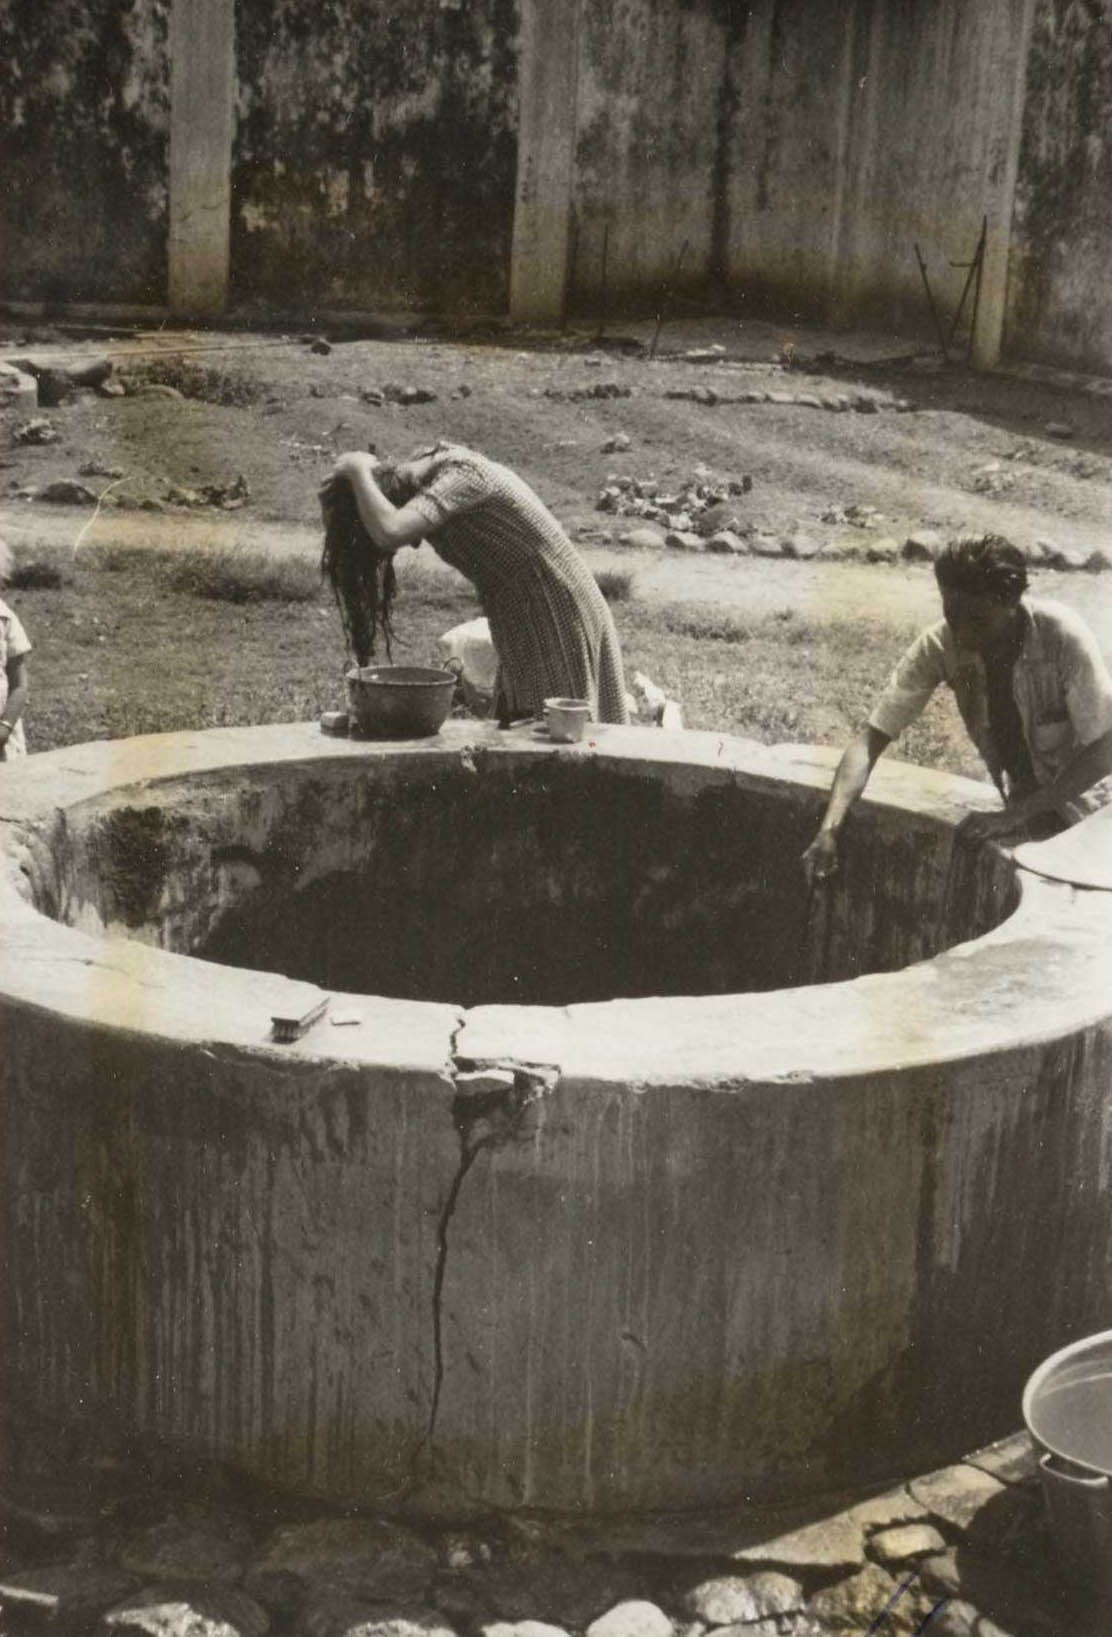 Dutch Indonesia Concentration camp with woman bathing